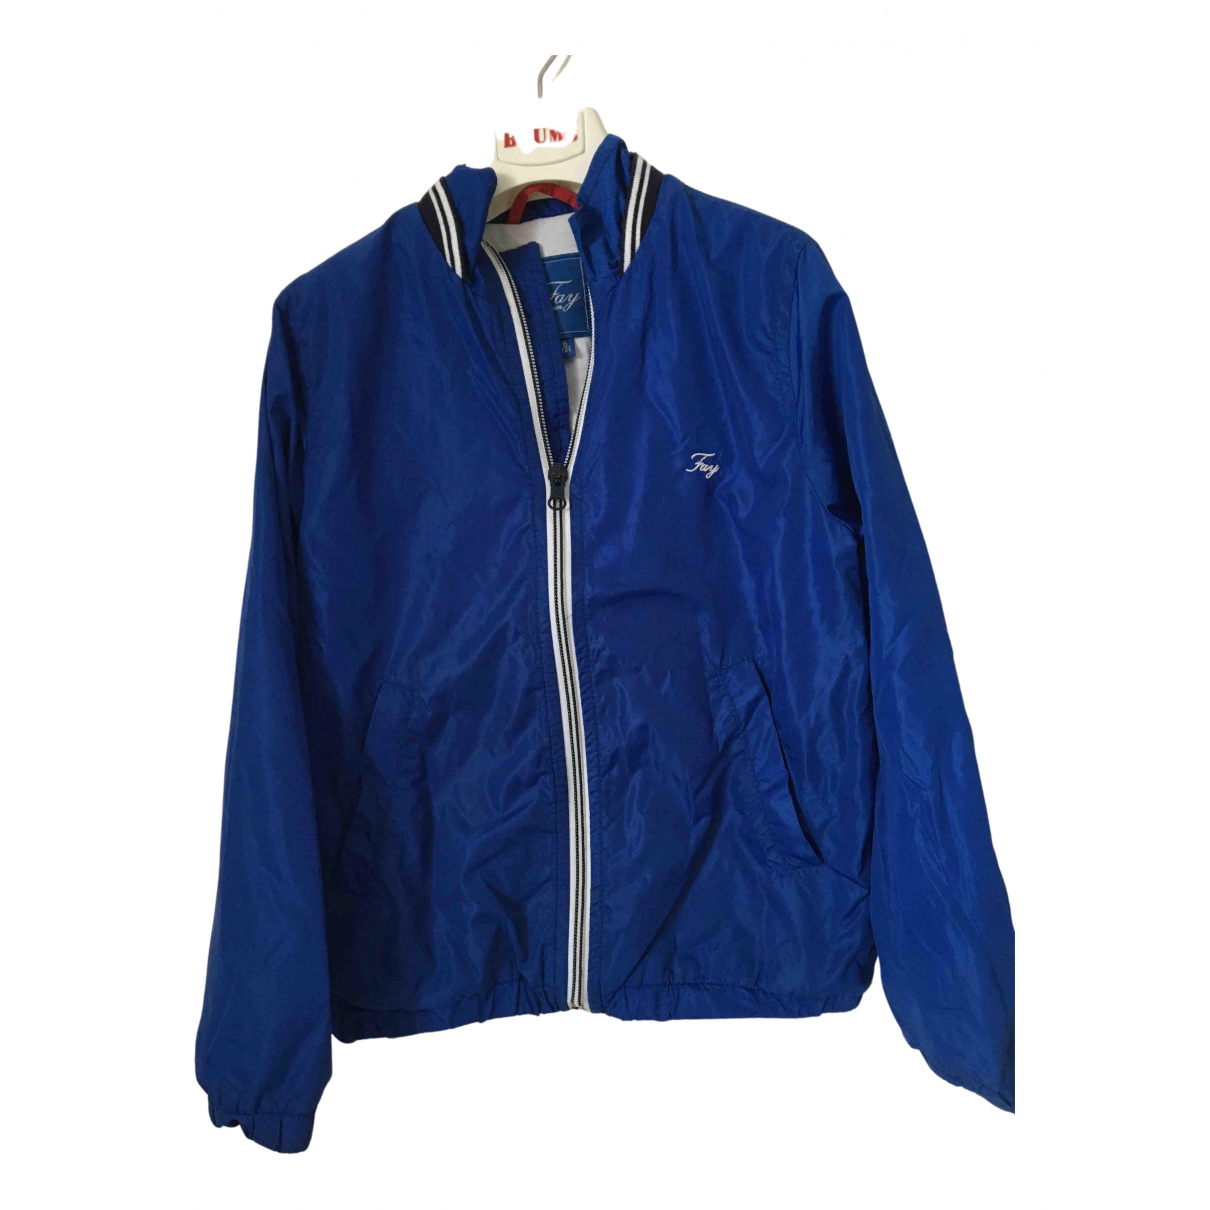 Fay N Blue jacket & coat for Kids 6 years - up to 114cm FR